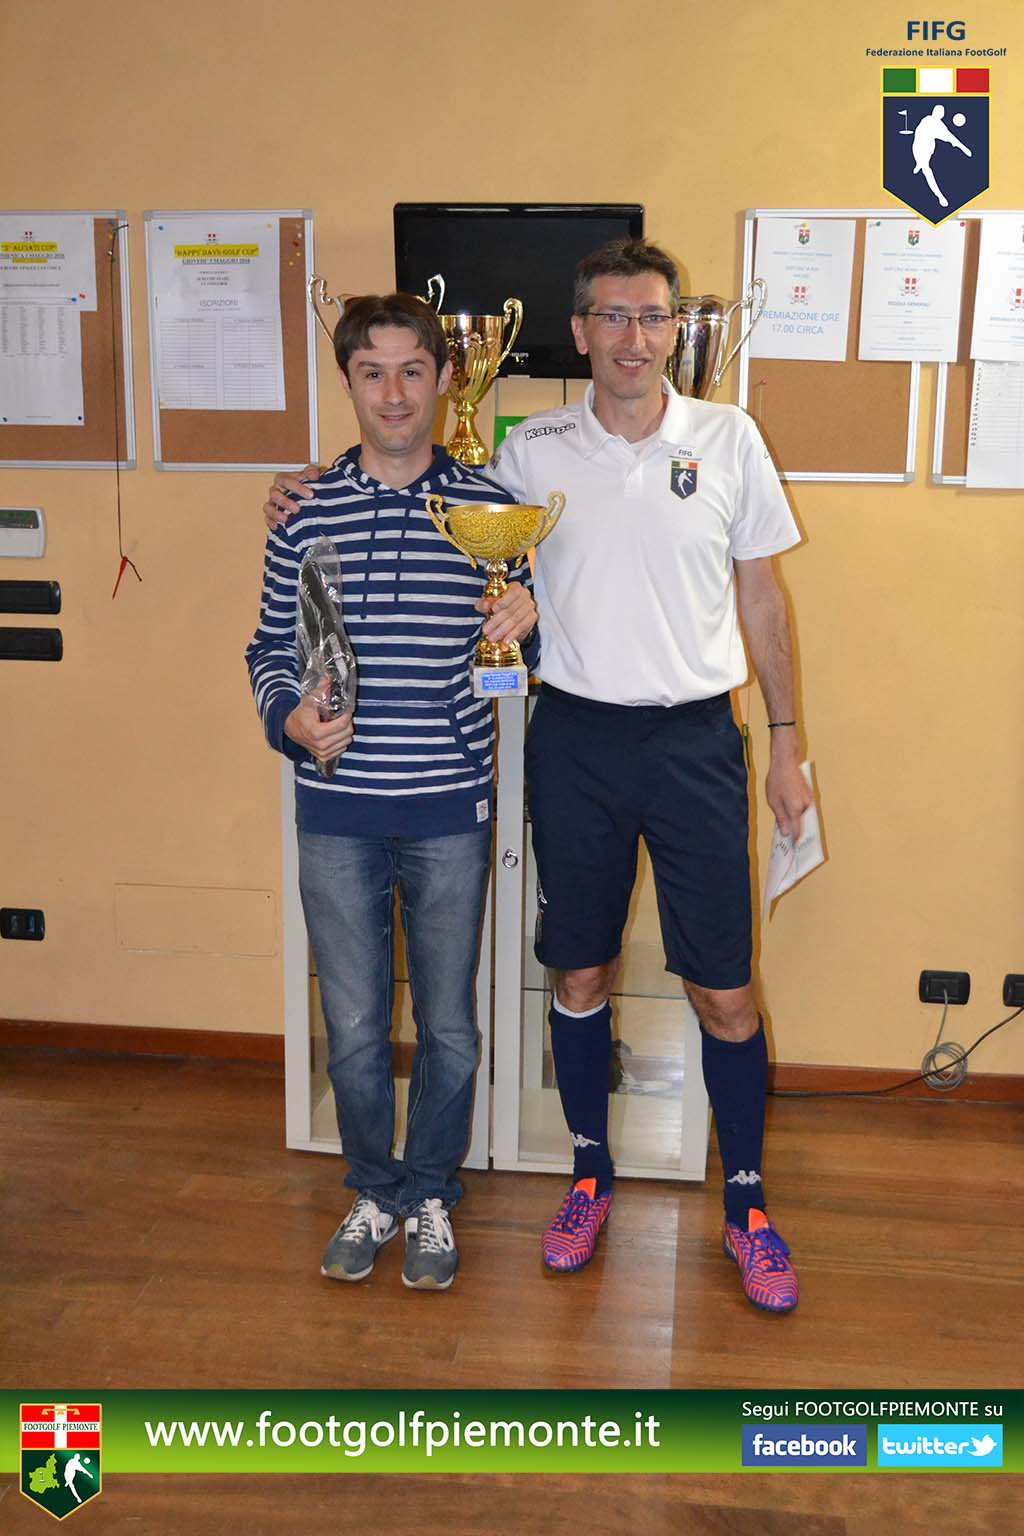 FOTO 9 Regions' Cup Footgolf Piemonte 2016 Golf Città di Asti (At) 30apr16-128